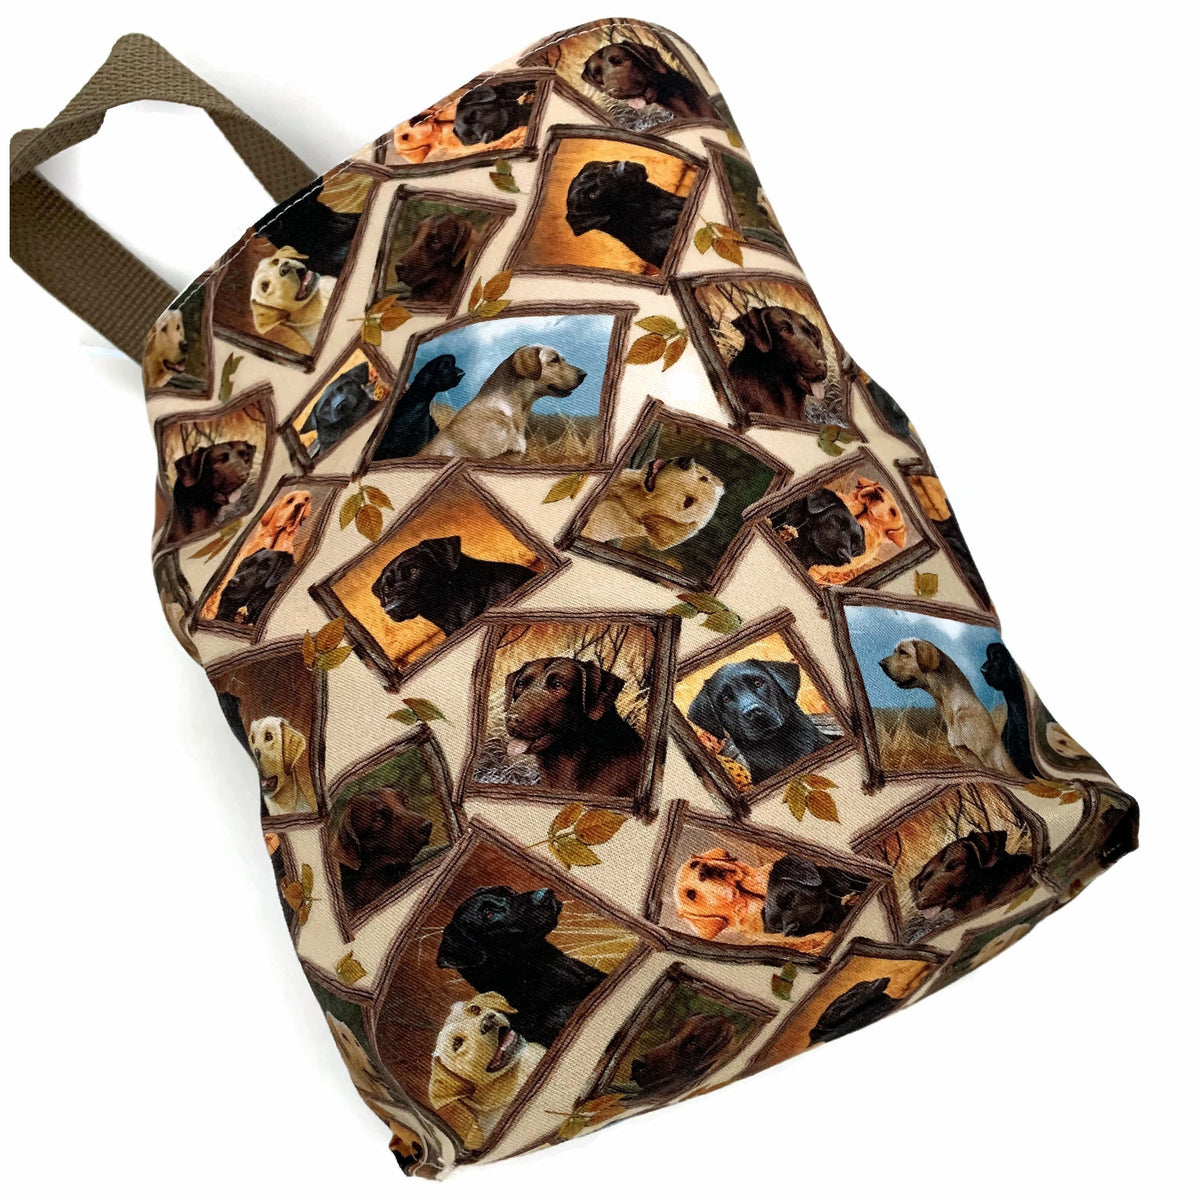 Labrador Retriever Car Trash Bag - Car Accessory - Lined Garbage Bag for Car - Soft Bag